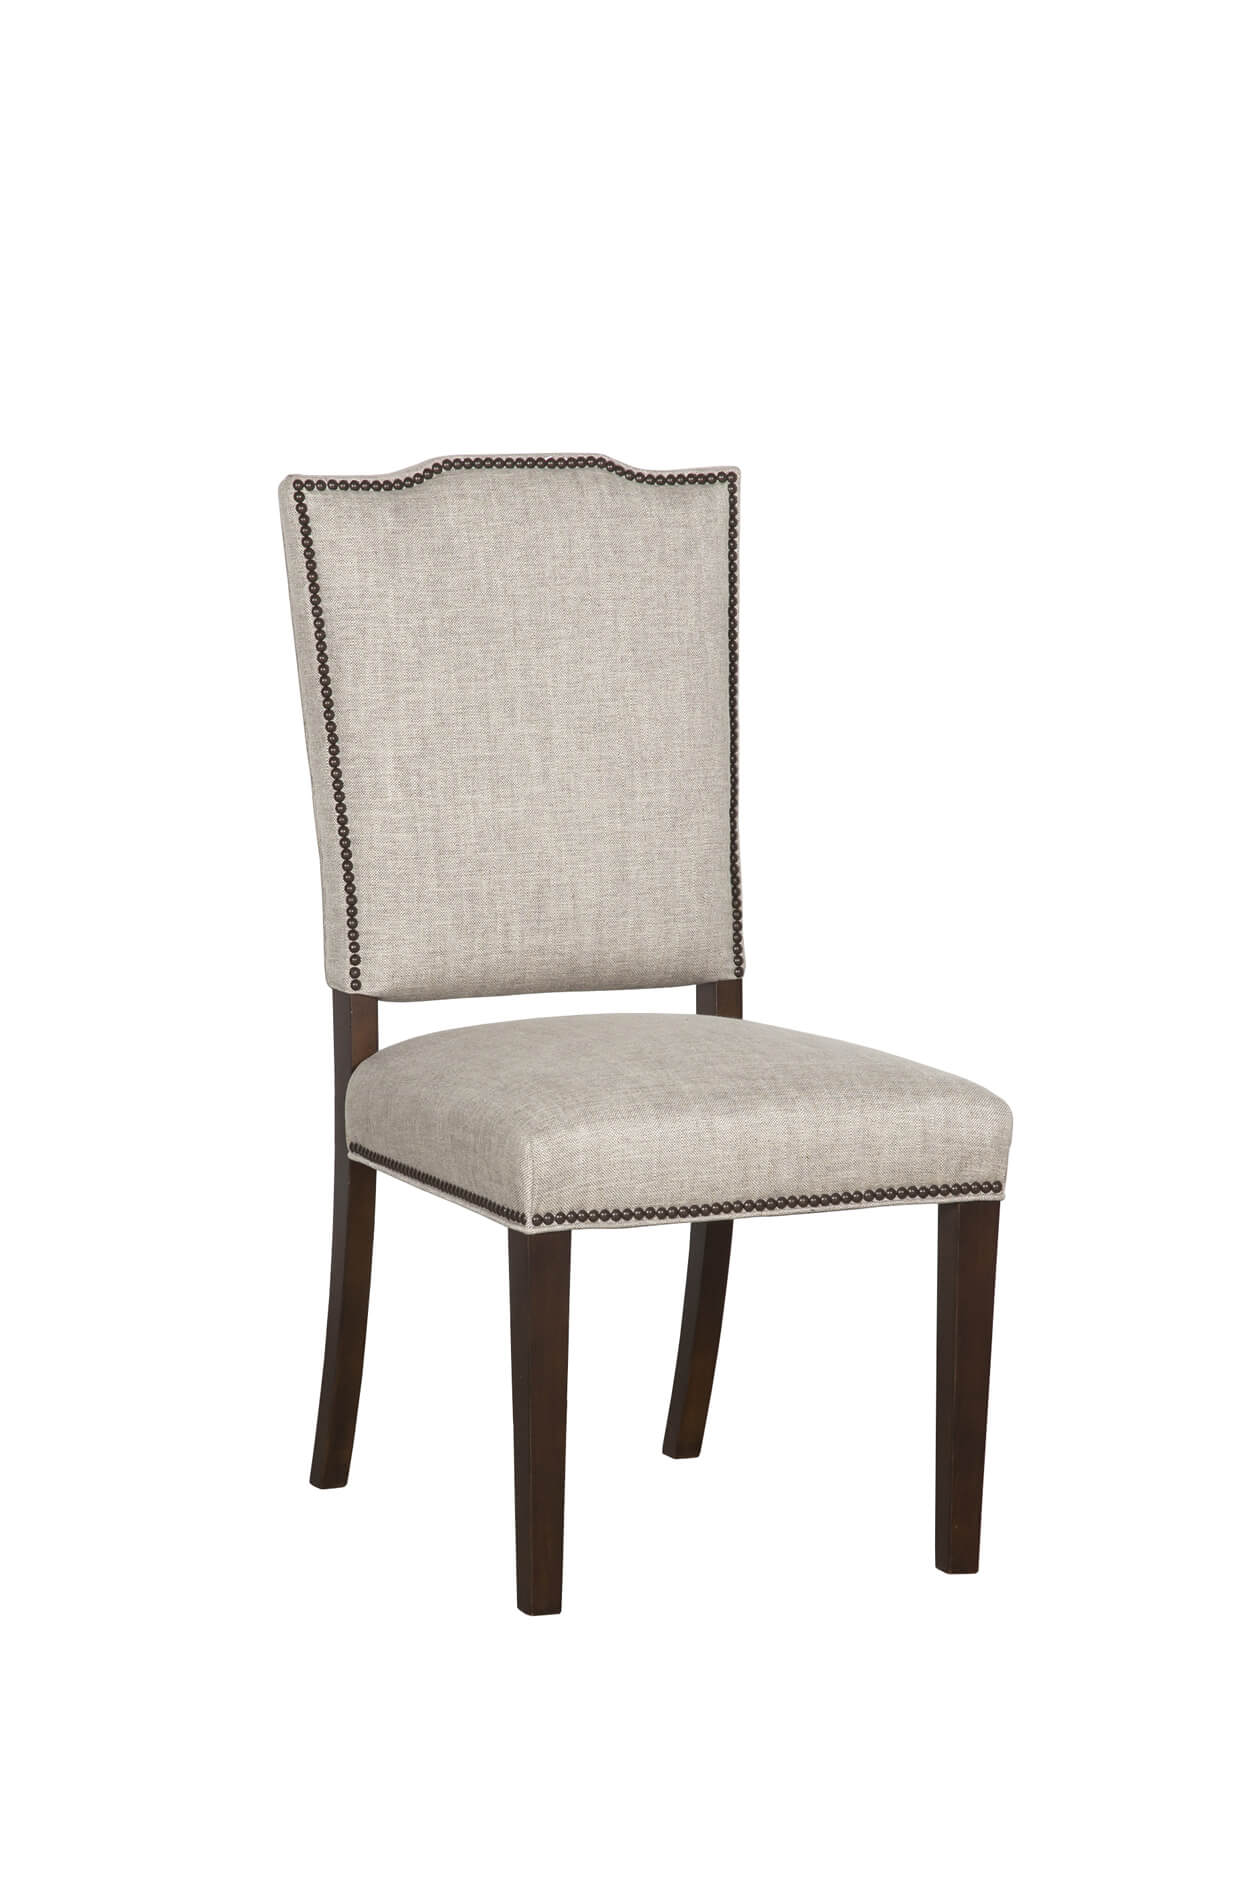 Fairfield's Josephine Upholstered Dining Chair